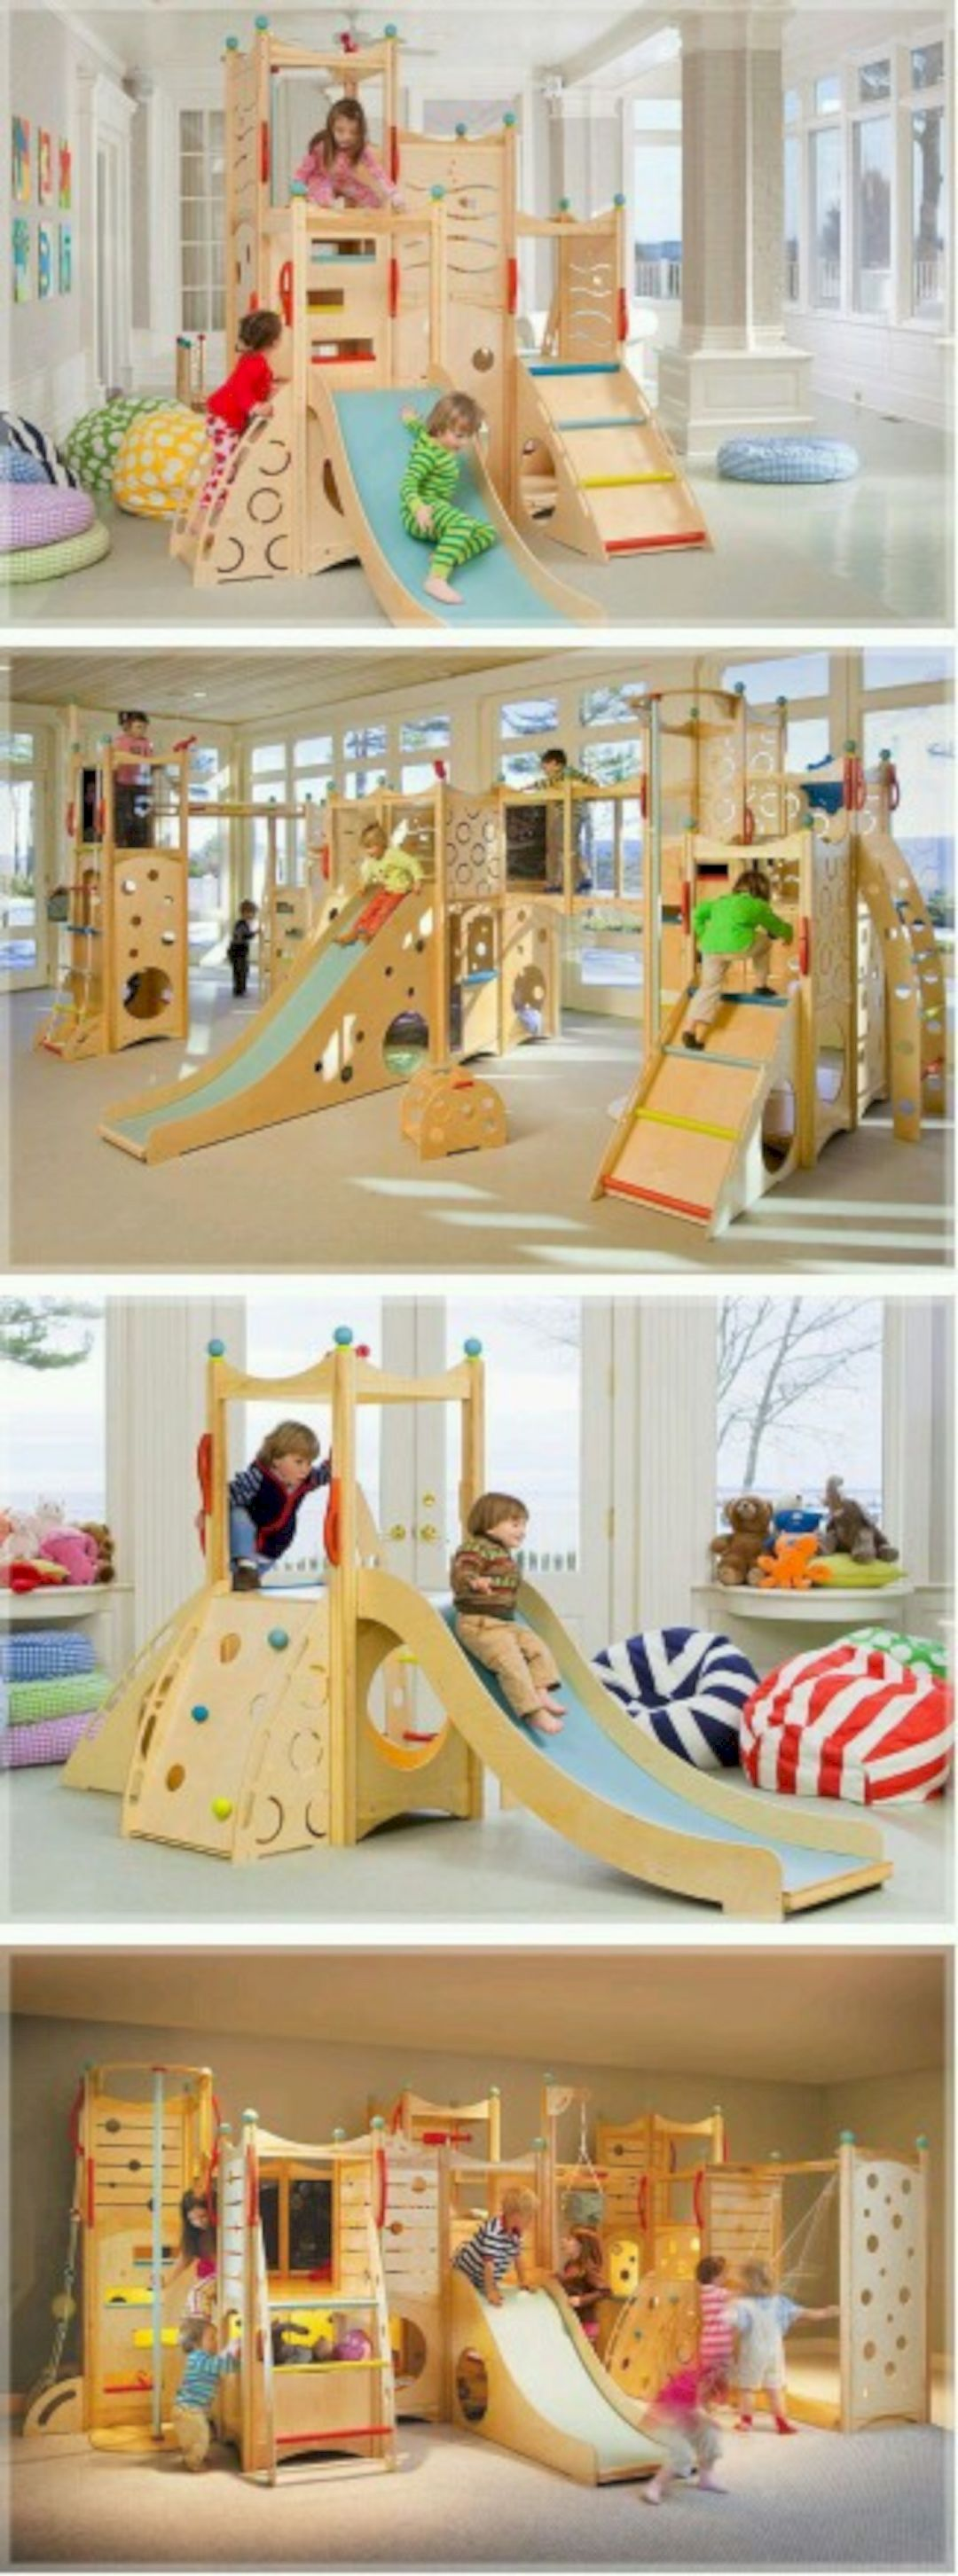 Things To Consider Before Making Kids Playground Design Indoor Play Areas Kids Play Area Kids Cafe